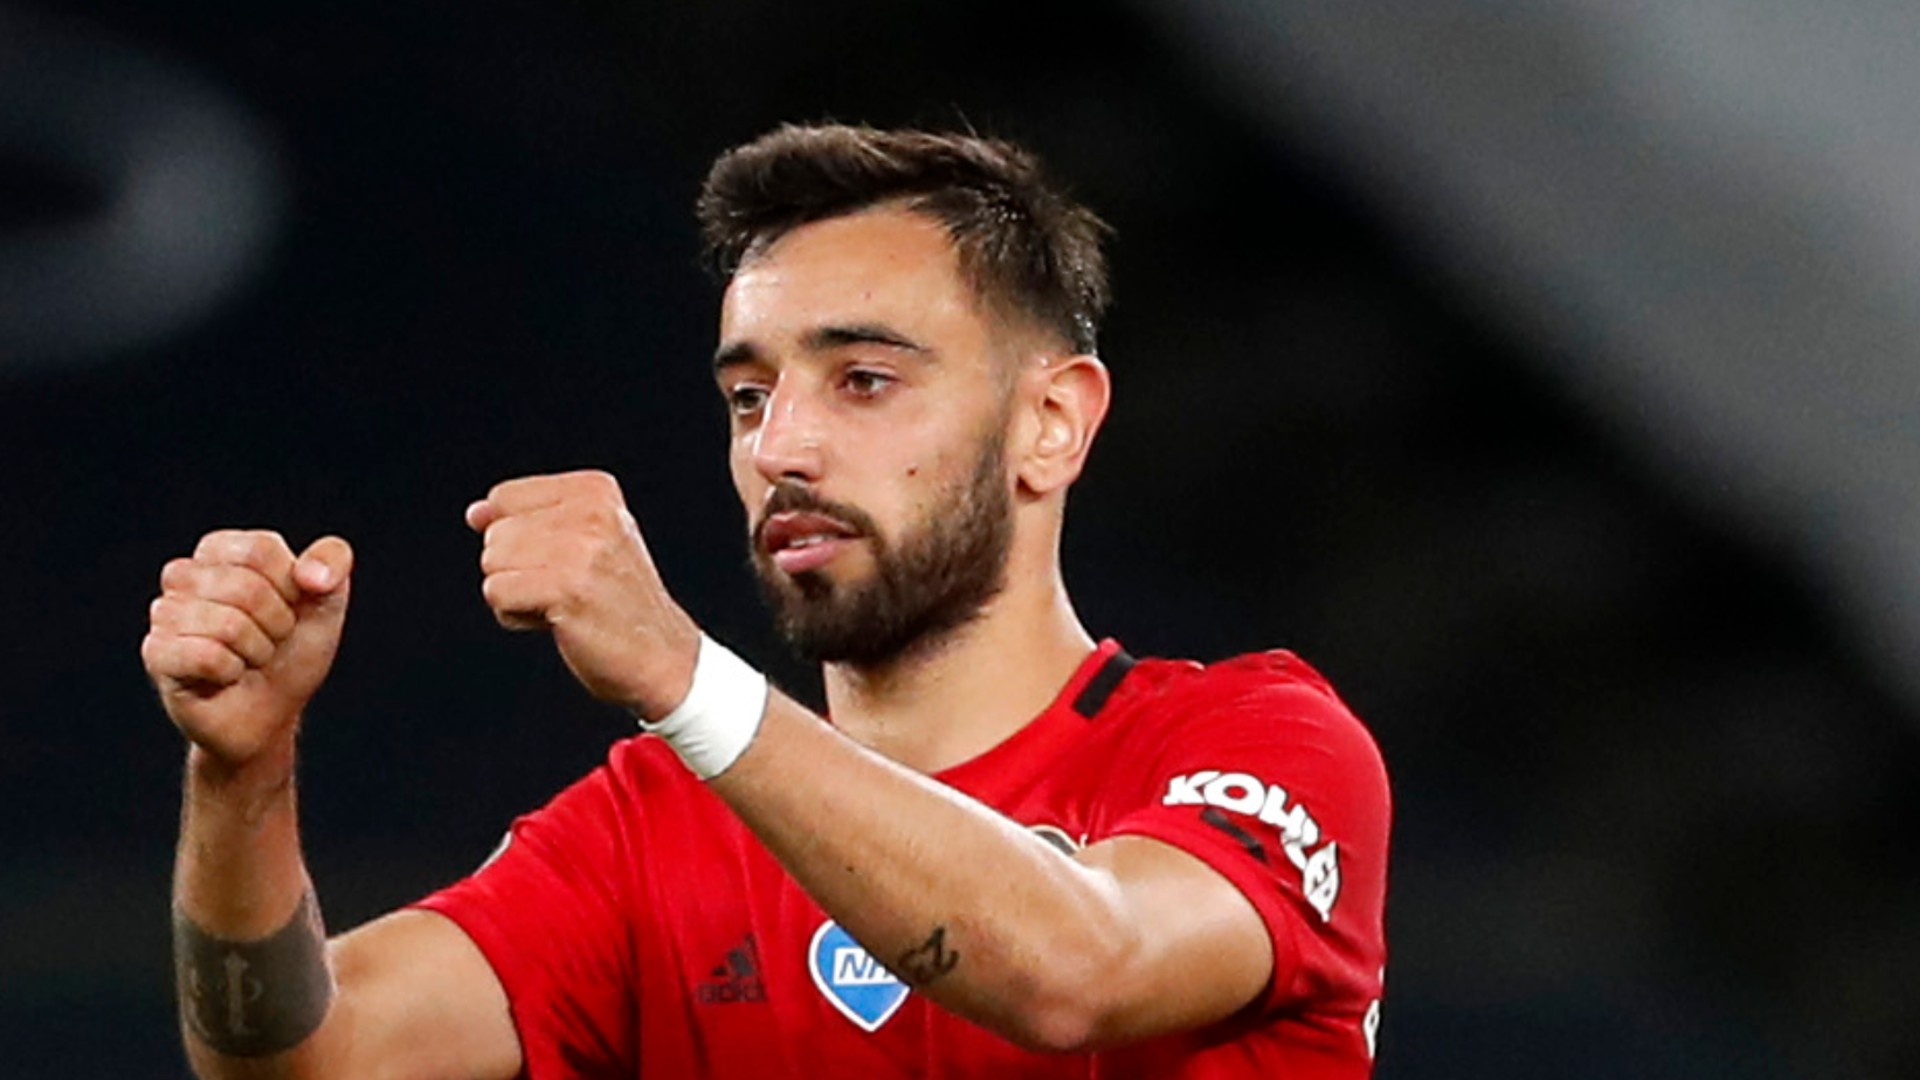 'VAR is here to help' – Fernandes plays down late penalty controversy in Man Utd draw